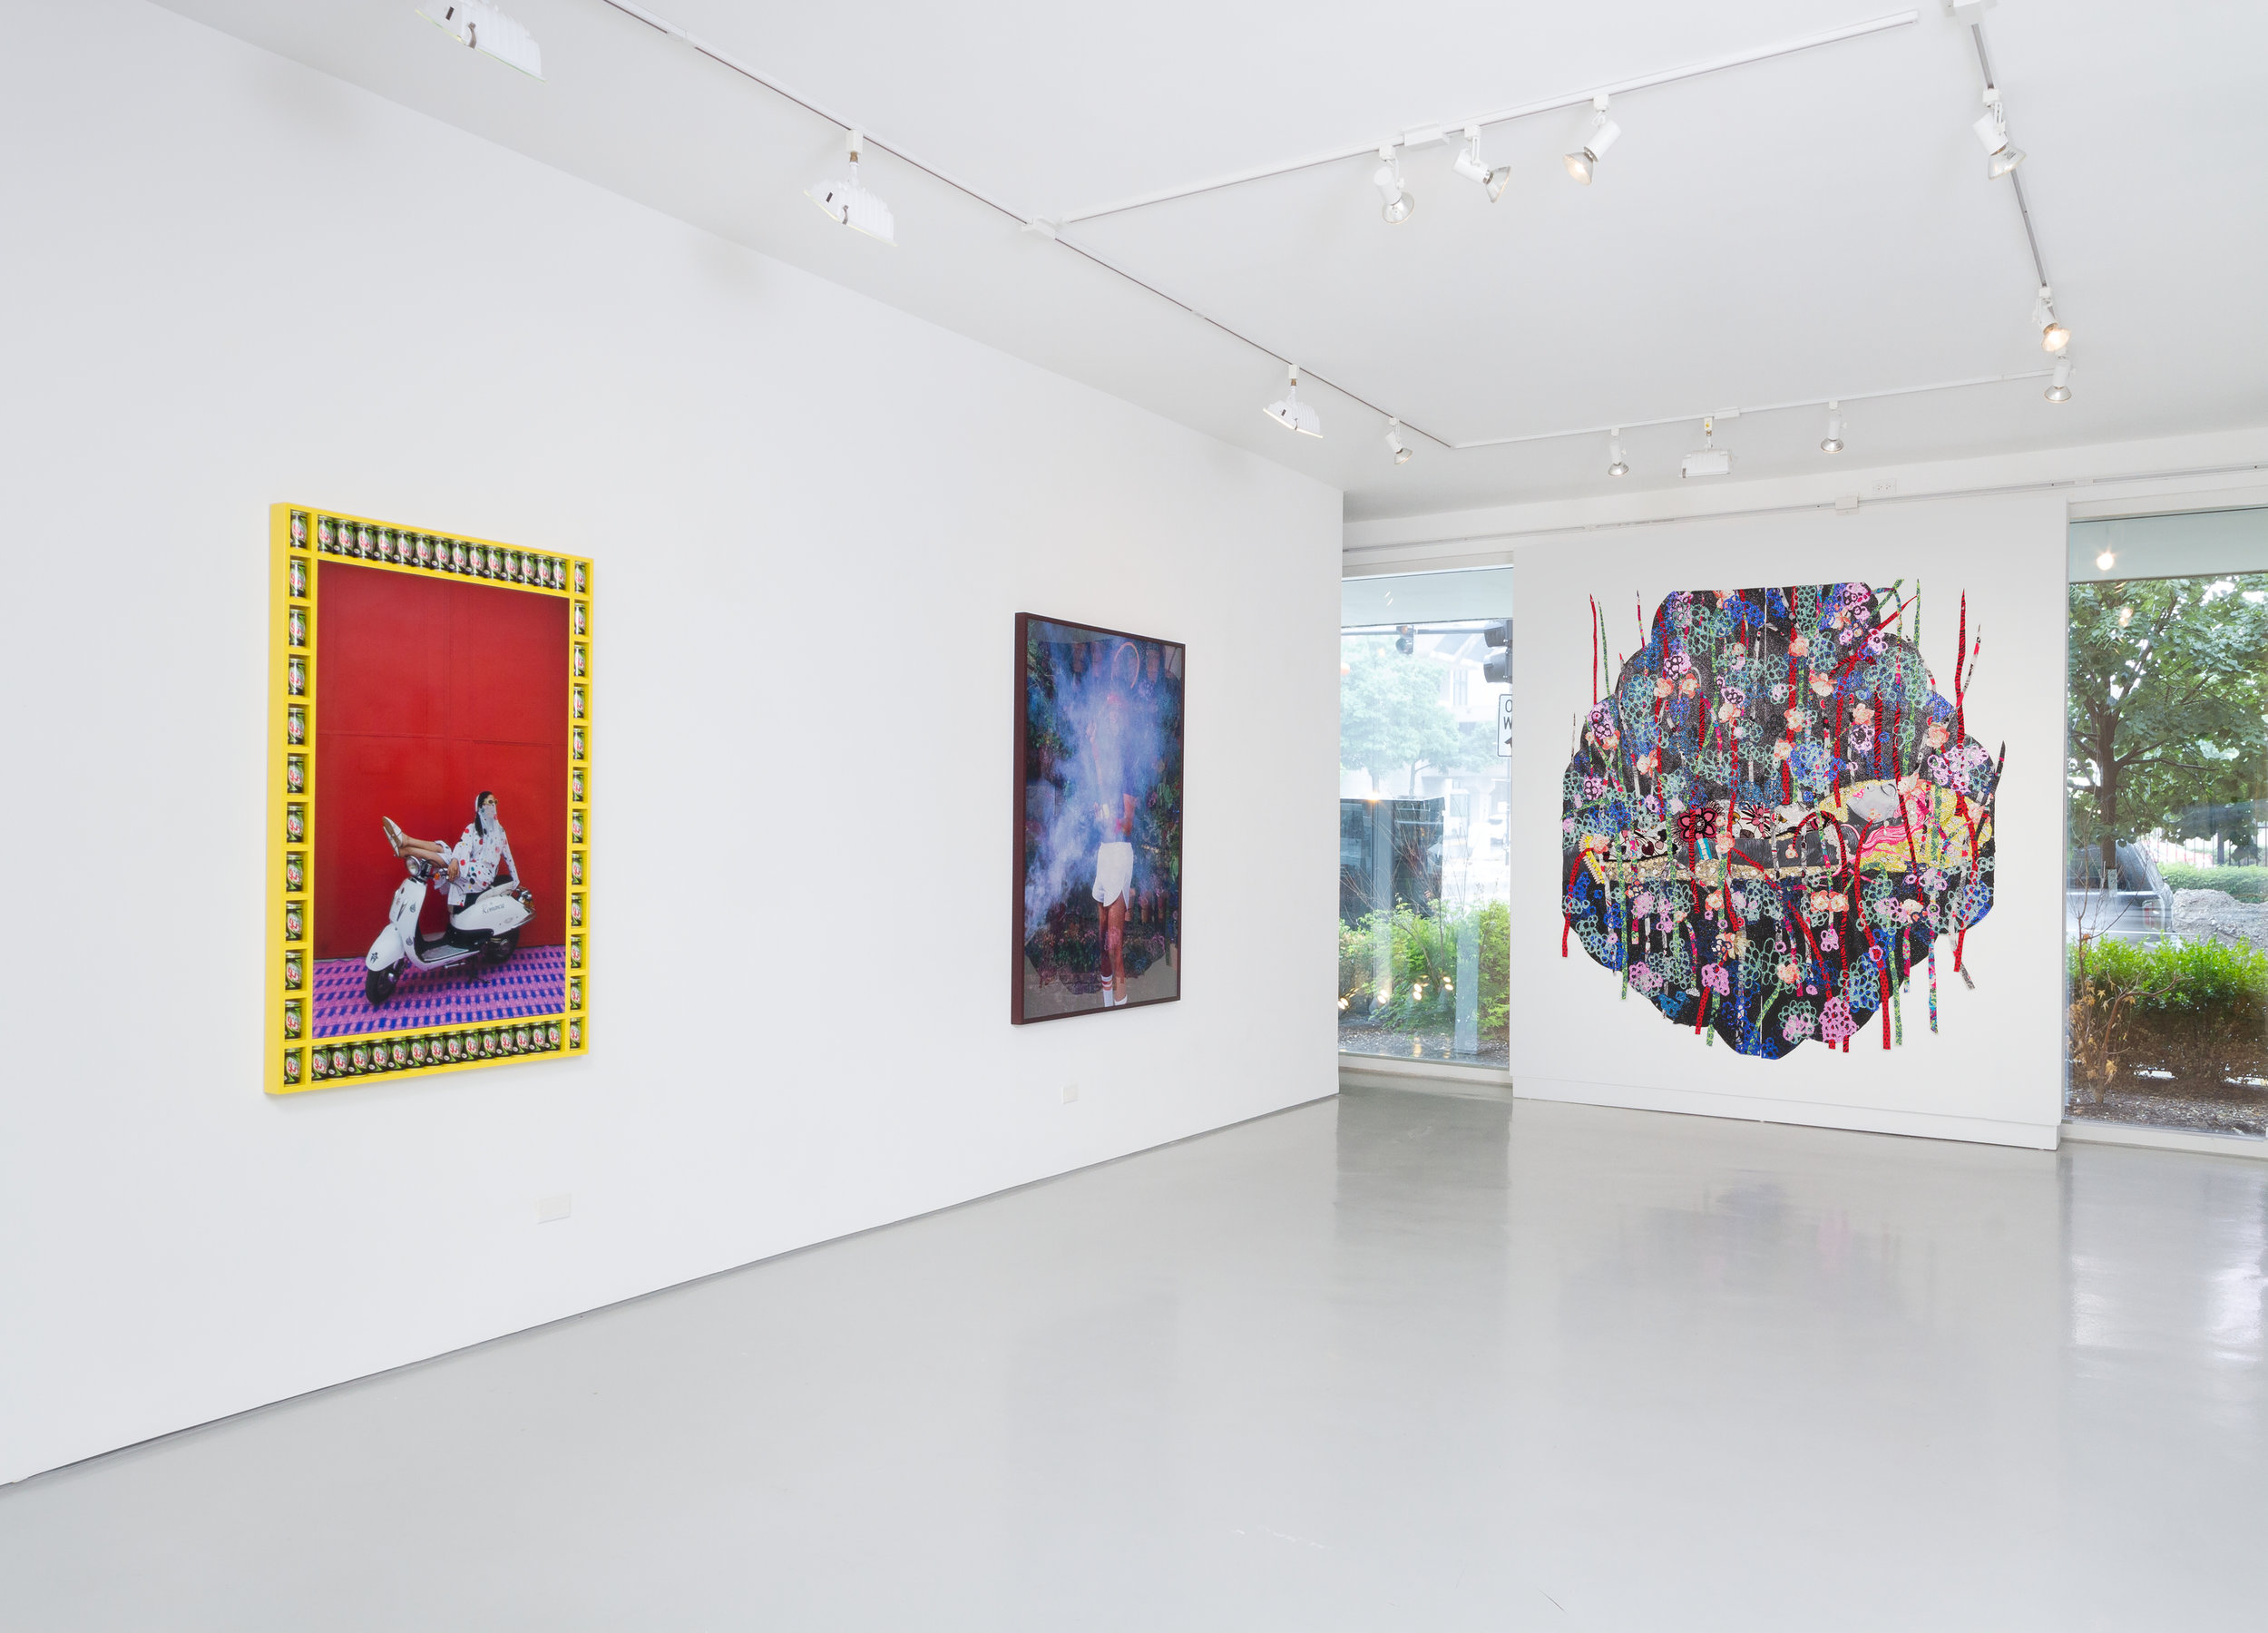 Look At Me Now!  installation view, Monique Meloche Gallery, 2015.  Above: Photo by Mariana Sheppard, Courtesy Crystal Bridges Museum of American Art